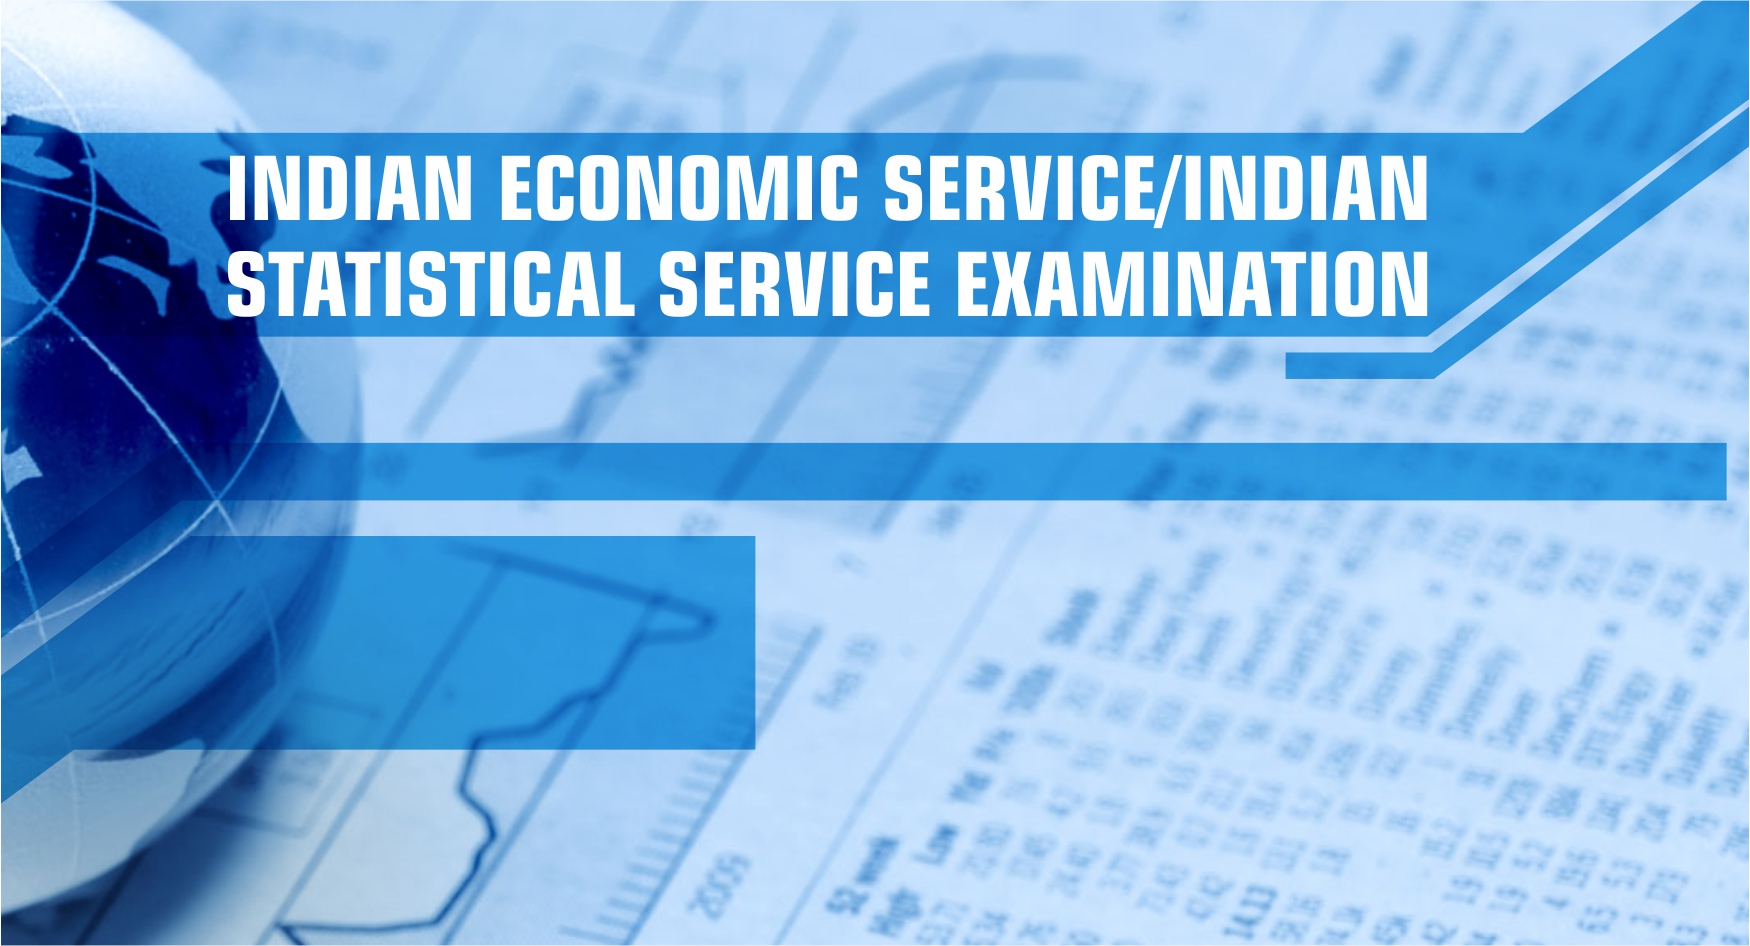 Exams under UPSC - Indian Economic Service/Indian Statistical Service Examination